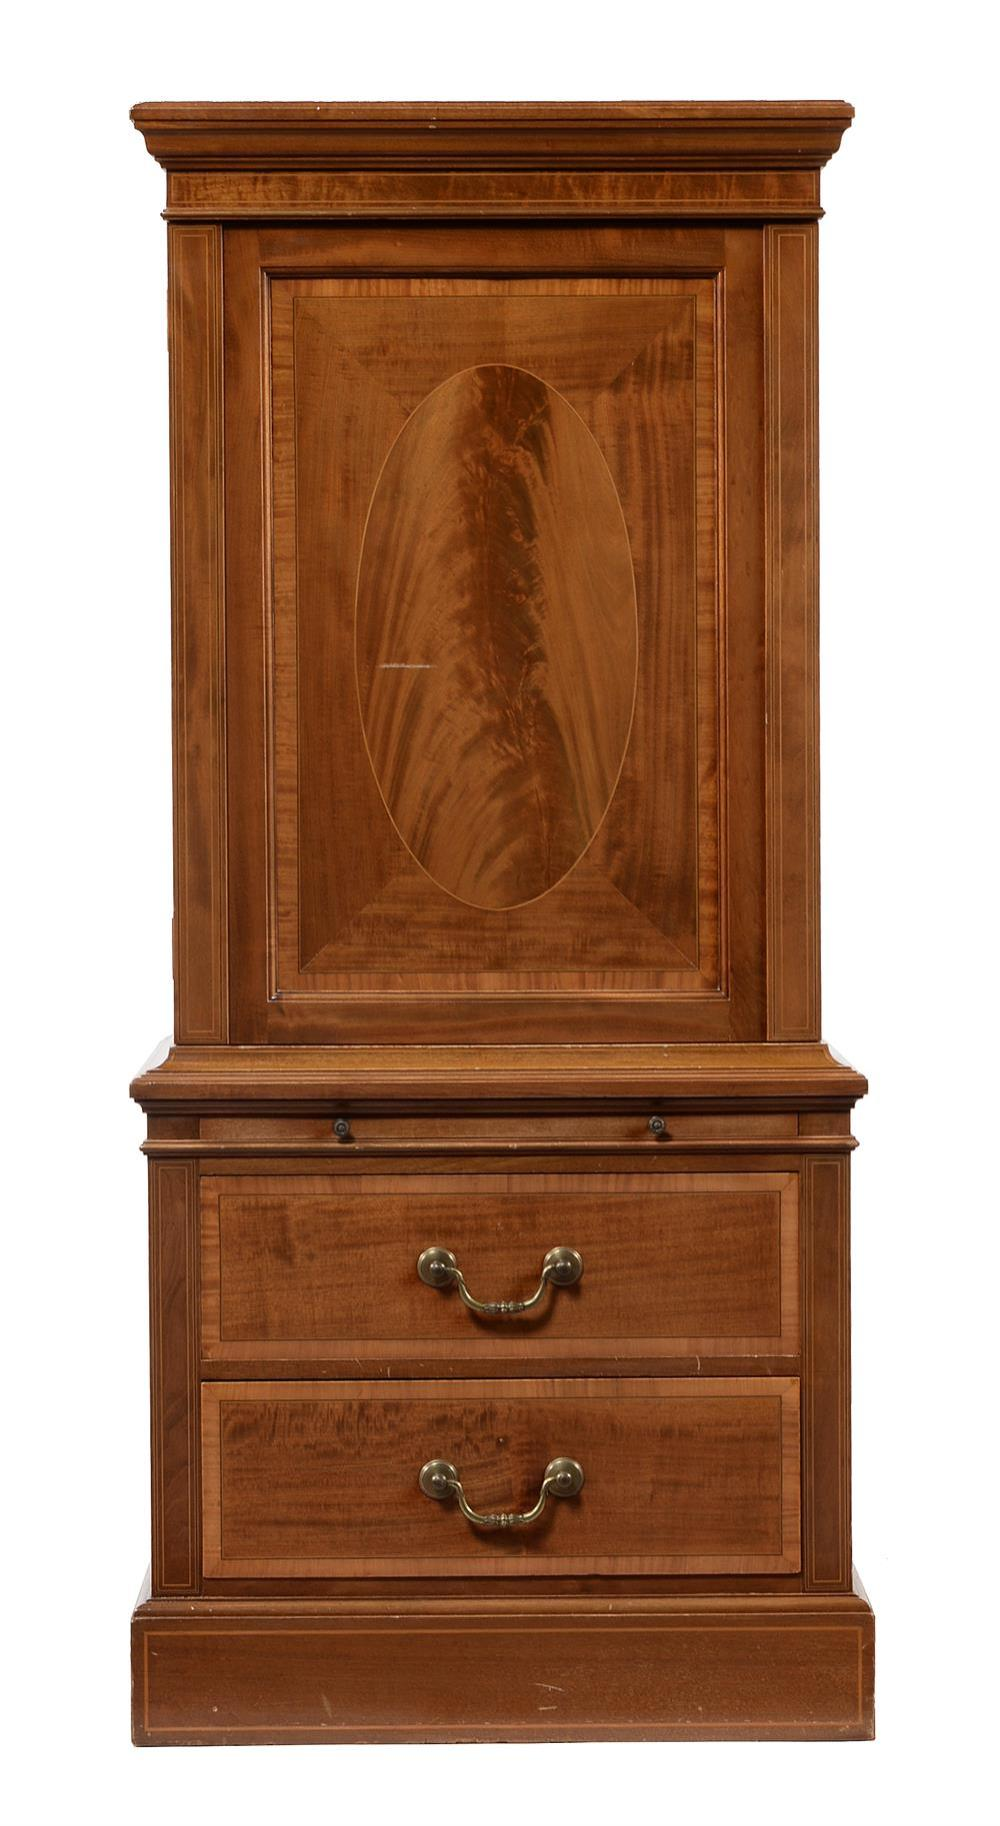 An Edwardian mahogany, banded and inlaid shoe cabinet